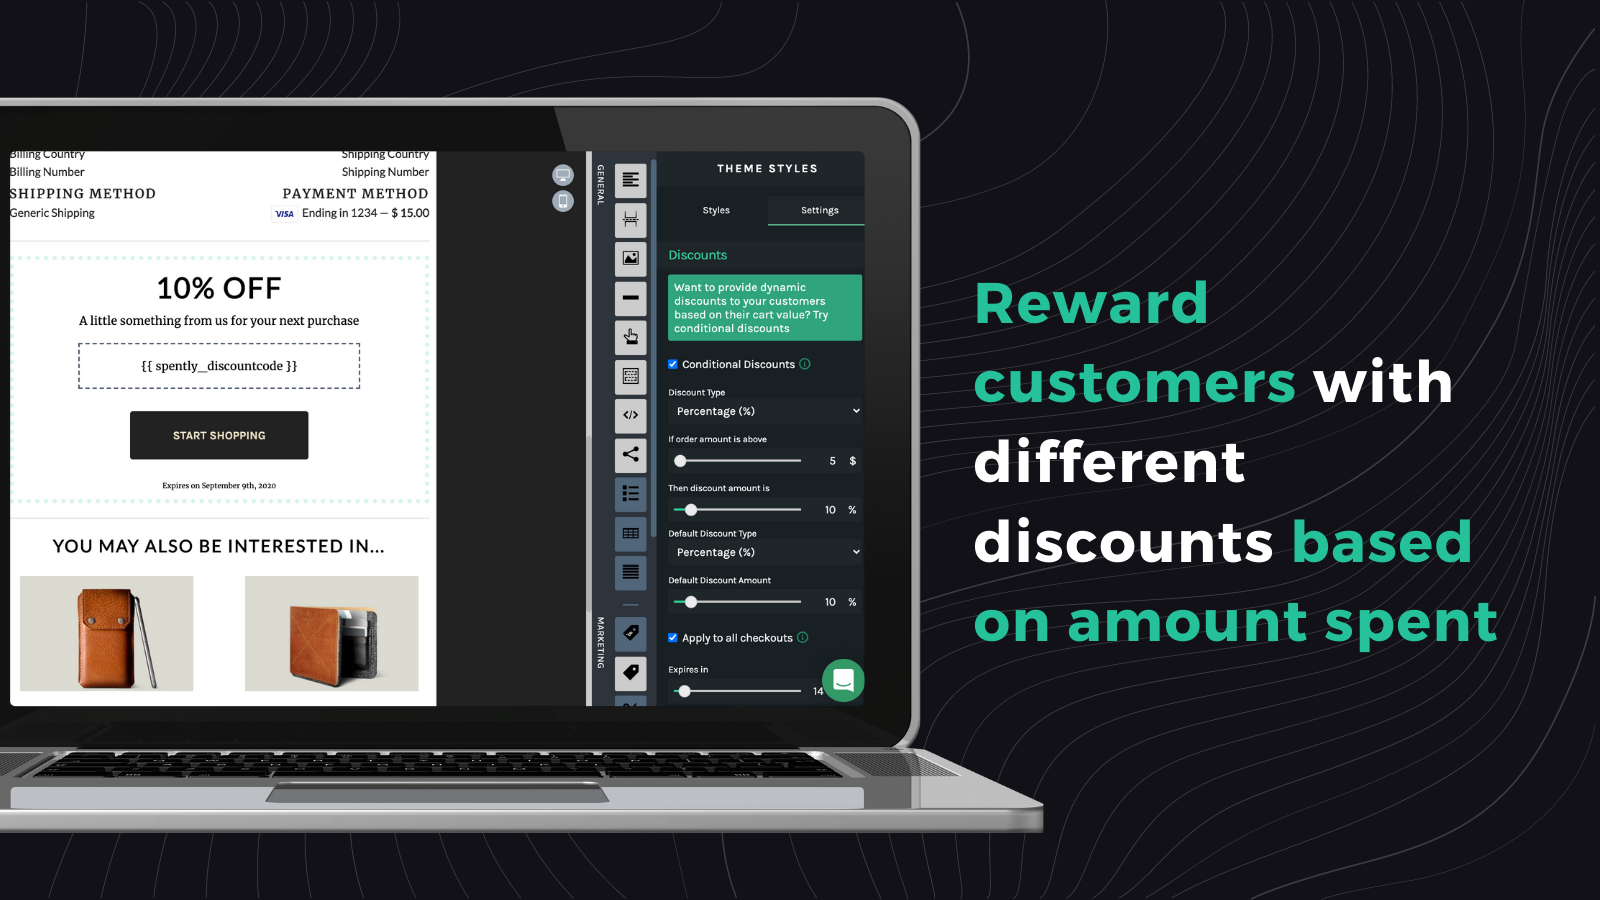 Reward customers with different discounts based on amount spent